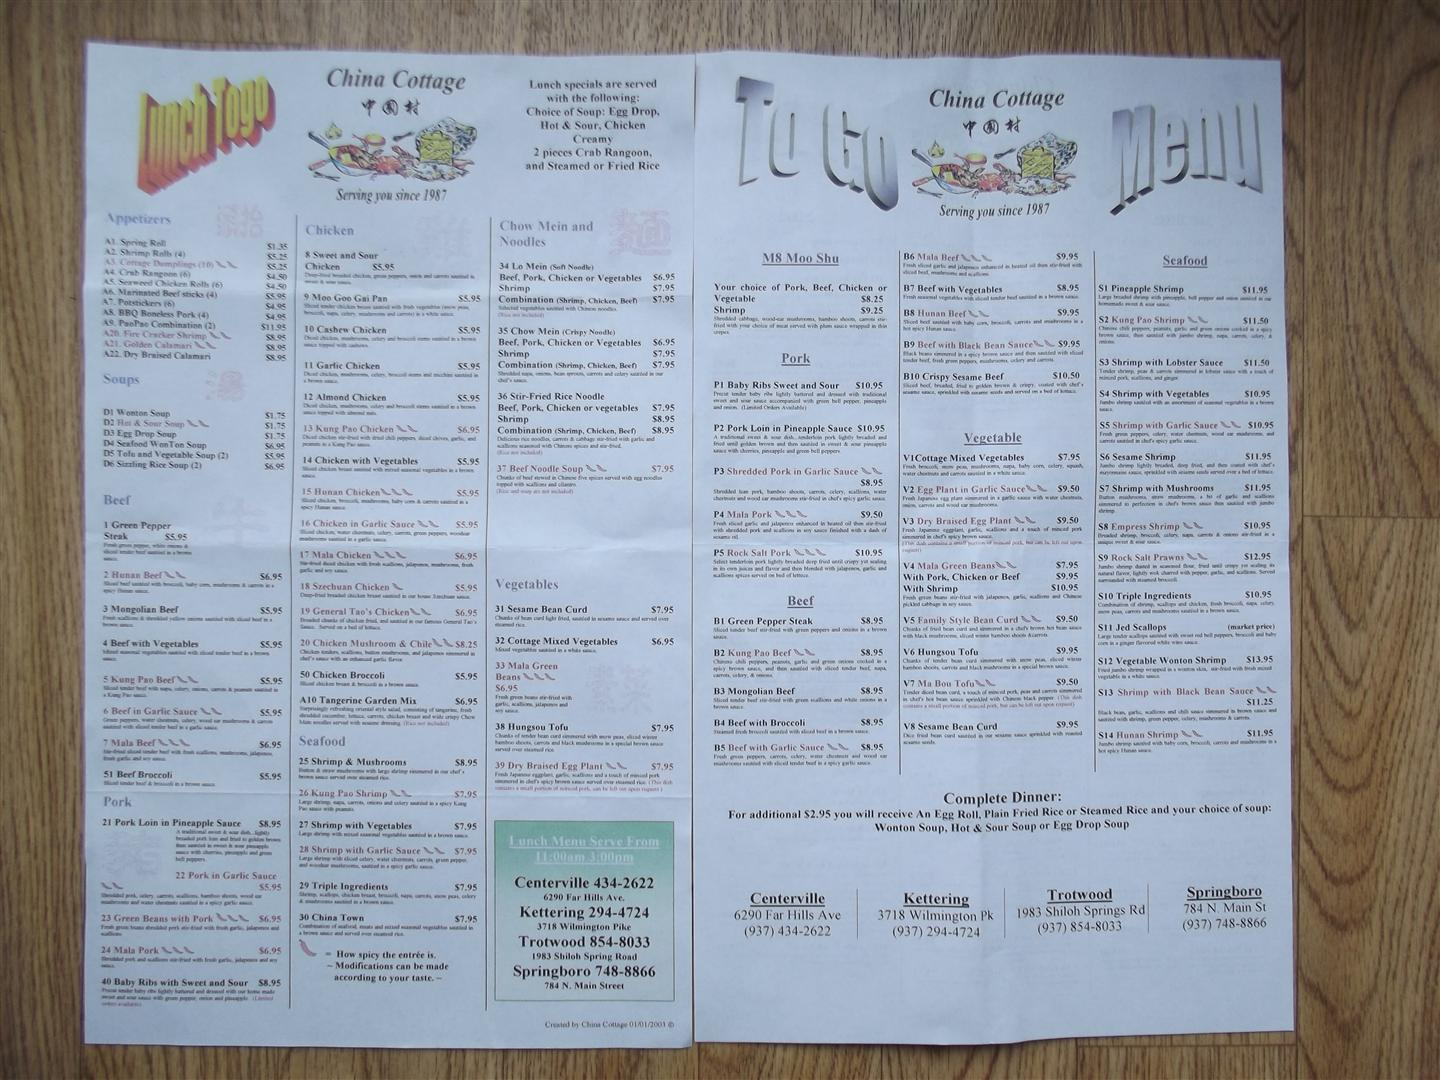 China Cottage Springboro Menu China Cottage Springboro